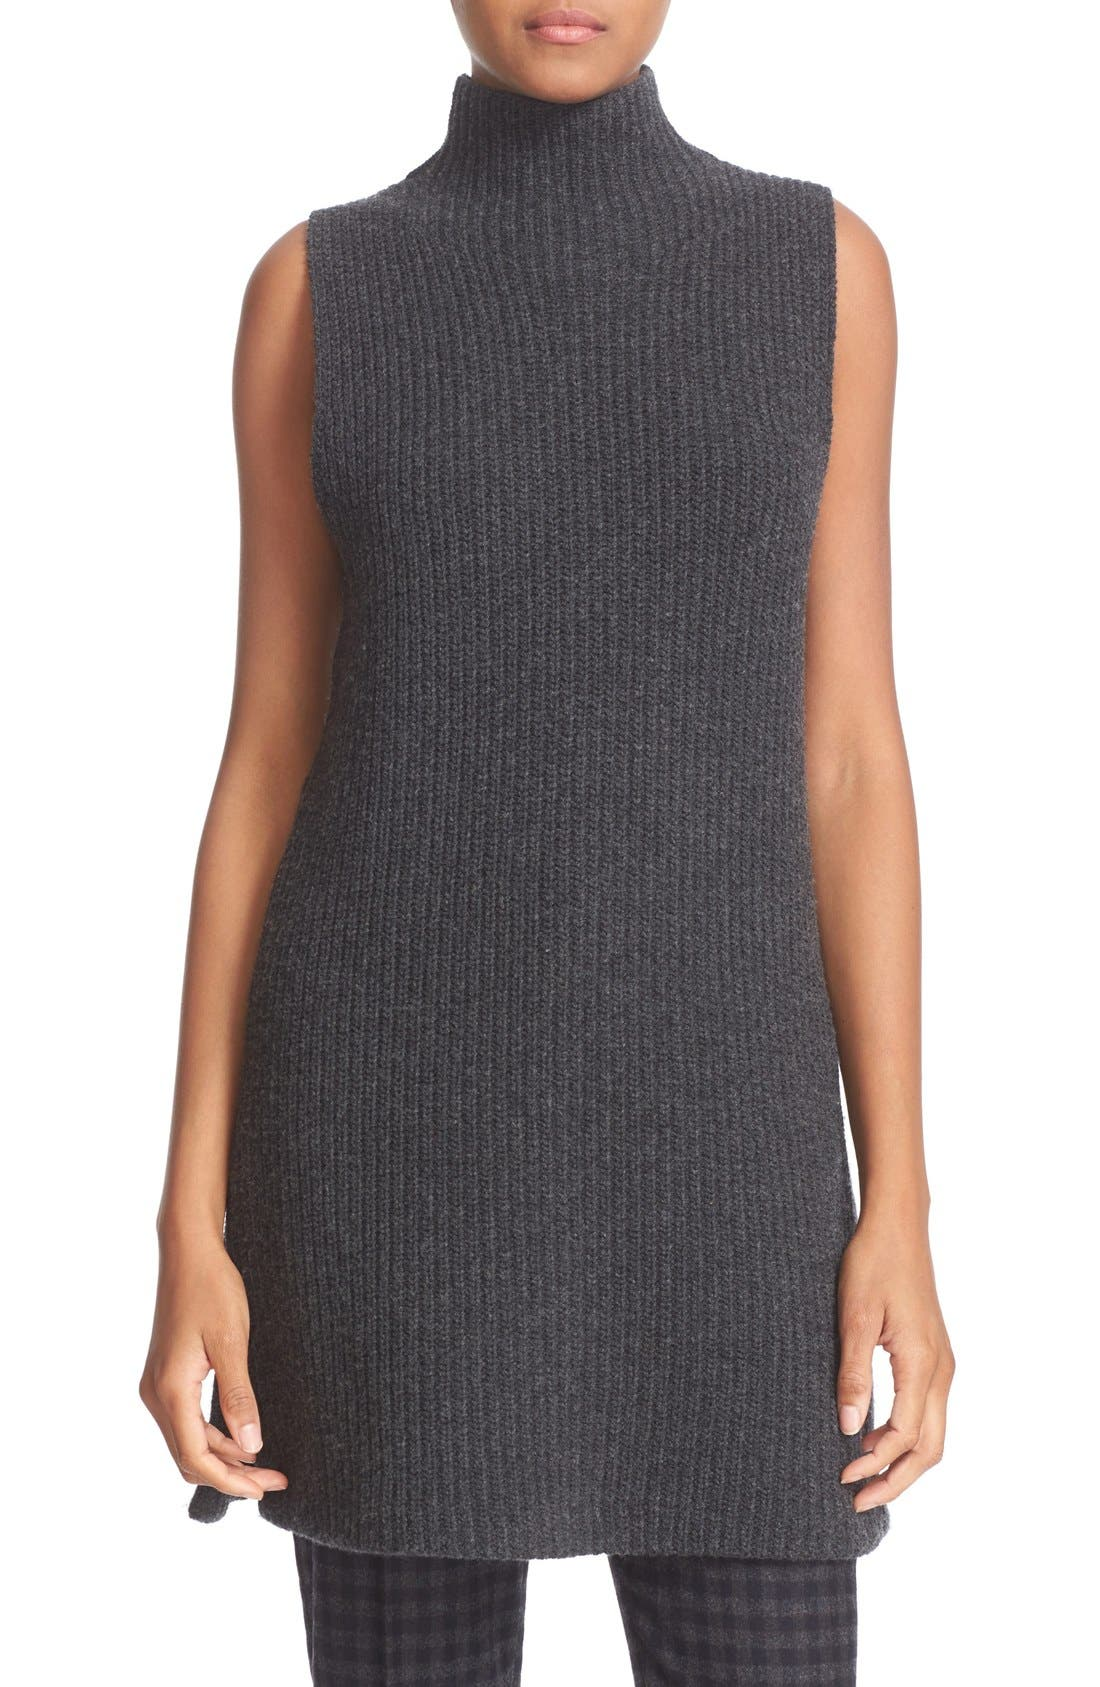 THEORY 'Embree Charmant' Sleeveless Wool & Cashmere Mock Neck Tunic Sweater, Main, color, 200